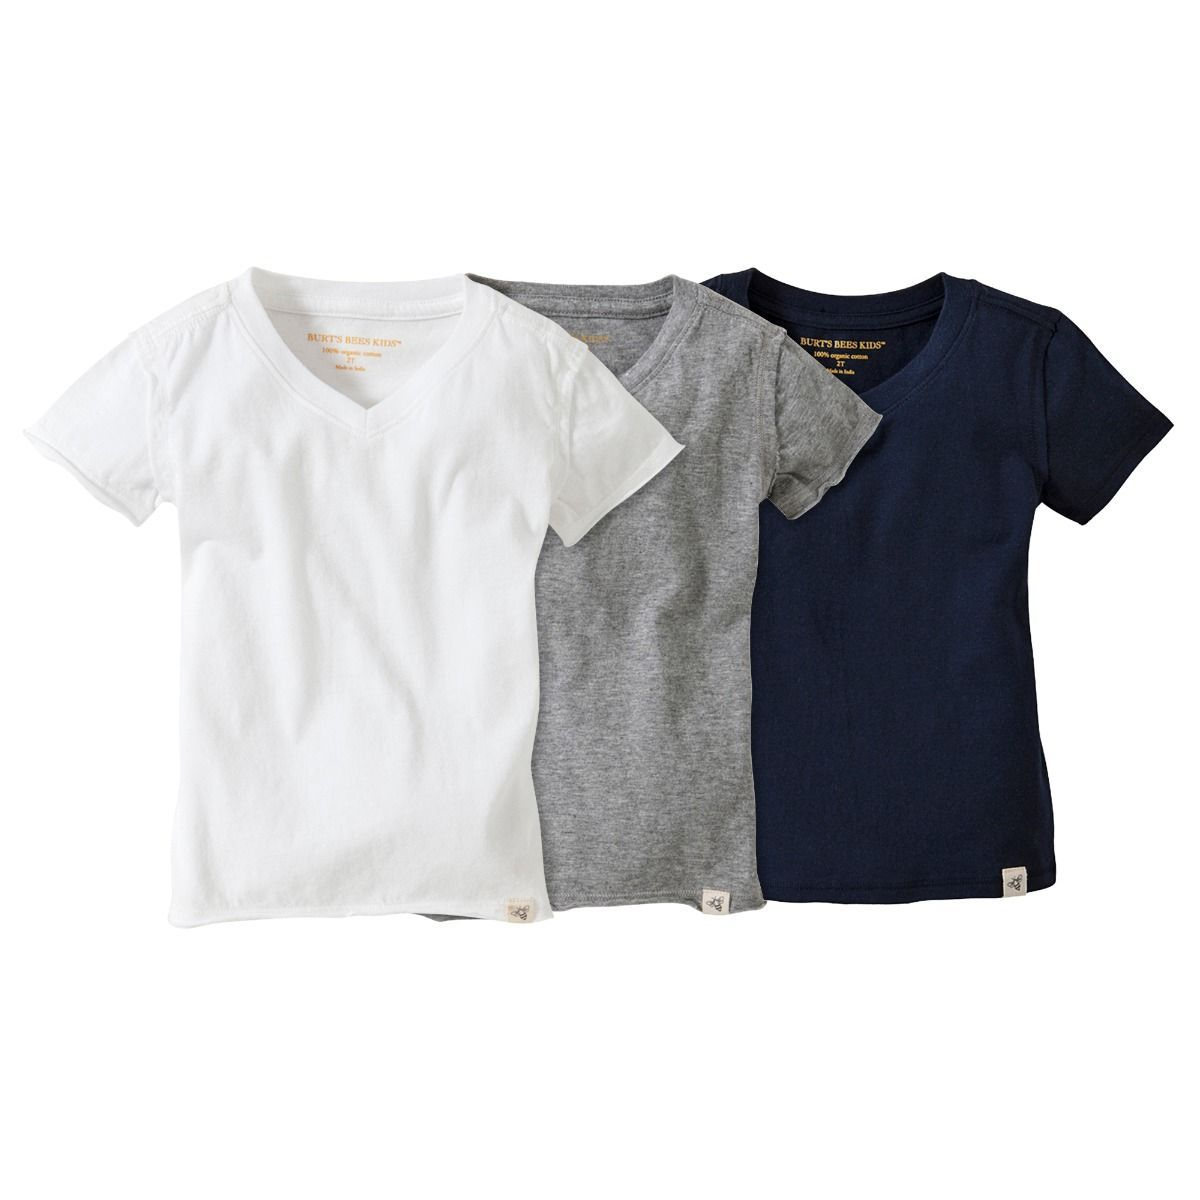 4111fbdb1 V-Neck Kids Tees 3-pack